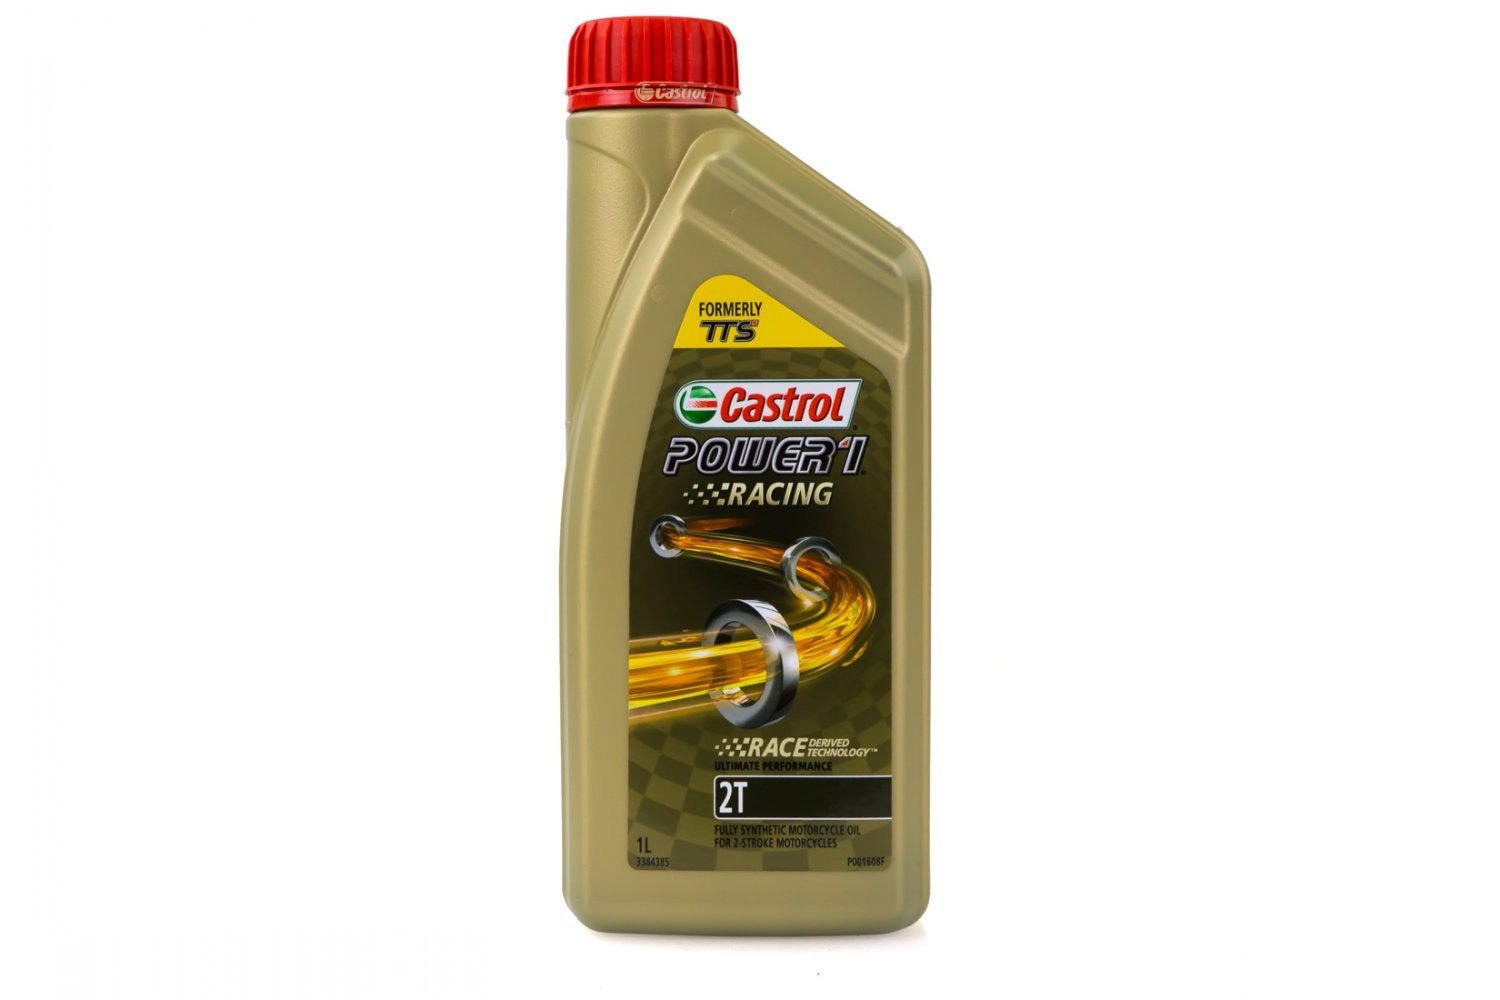 3384385 | Castrol Power 1 TTS Racing Power 1 2T Fully Synthetic 2 Stroke  Engine Oil 1L